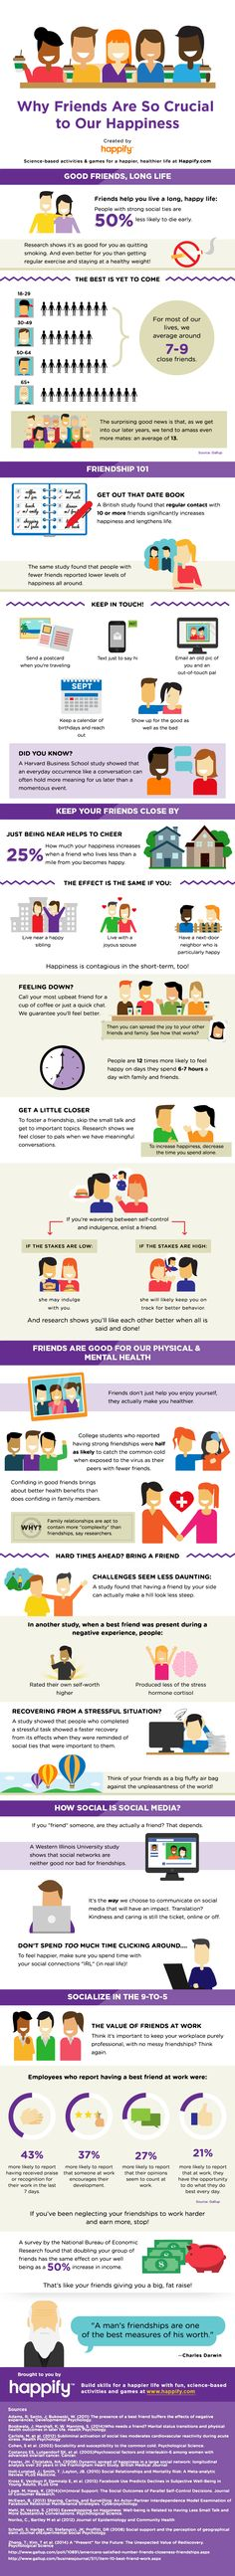 friendship infographic